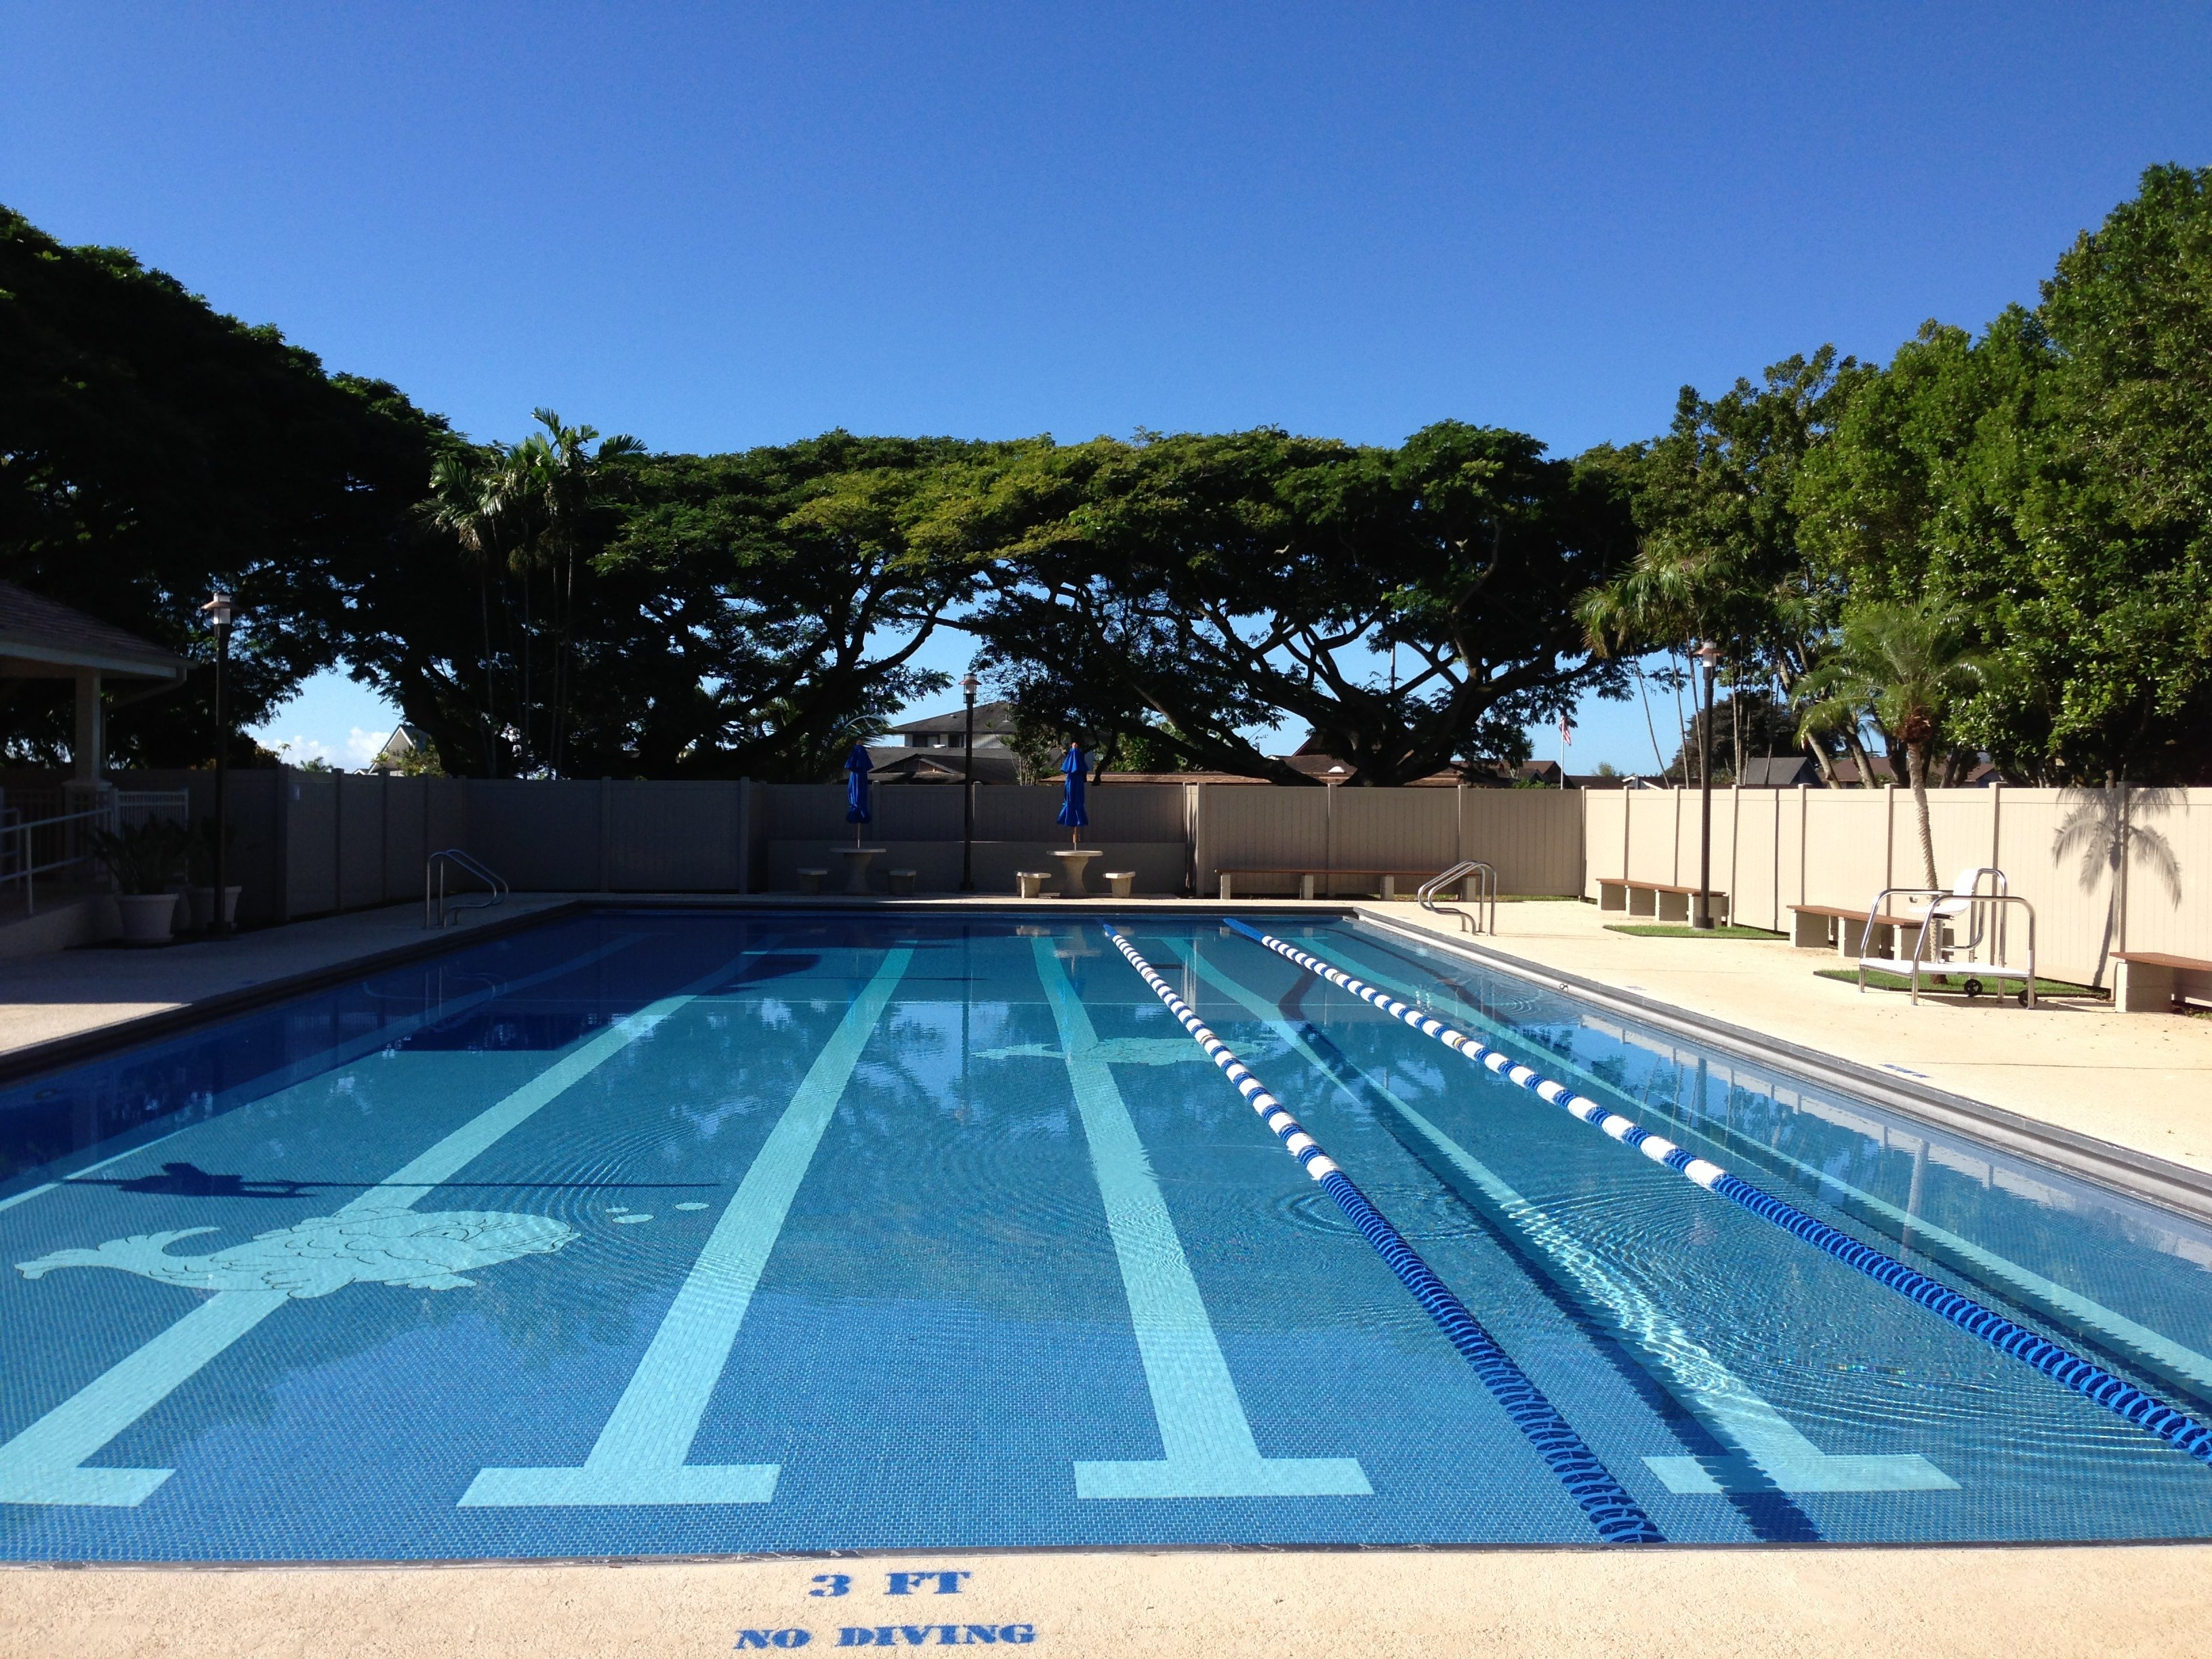 July 2013 - Mililani Recreation Center No. 2 - Swimming Pool Renovation